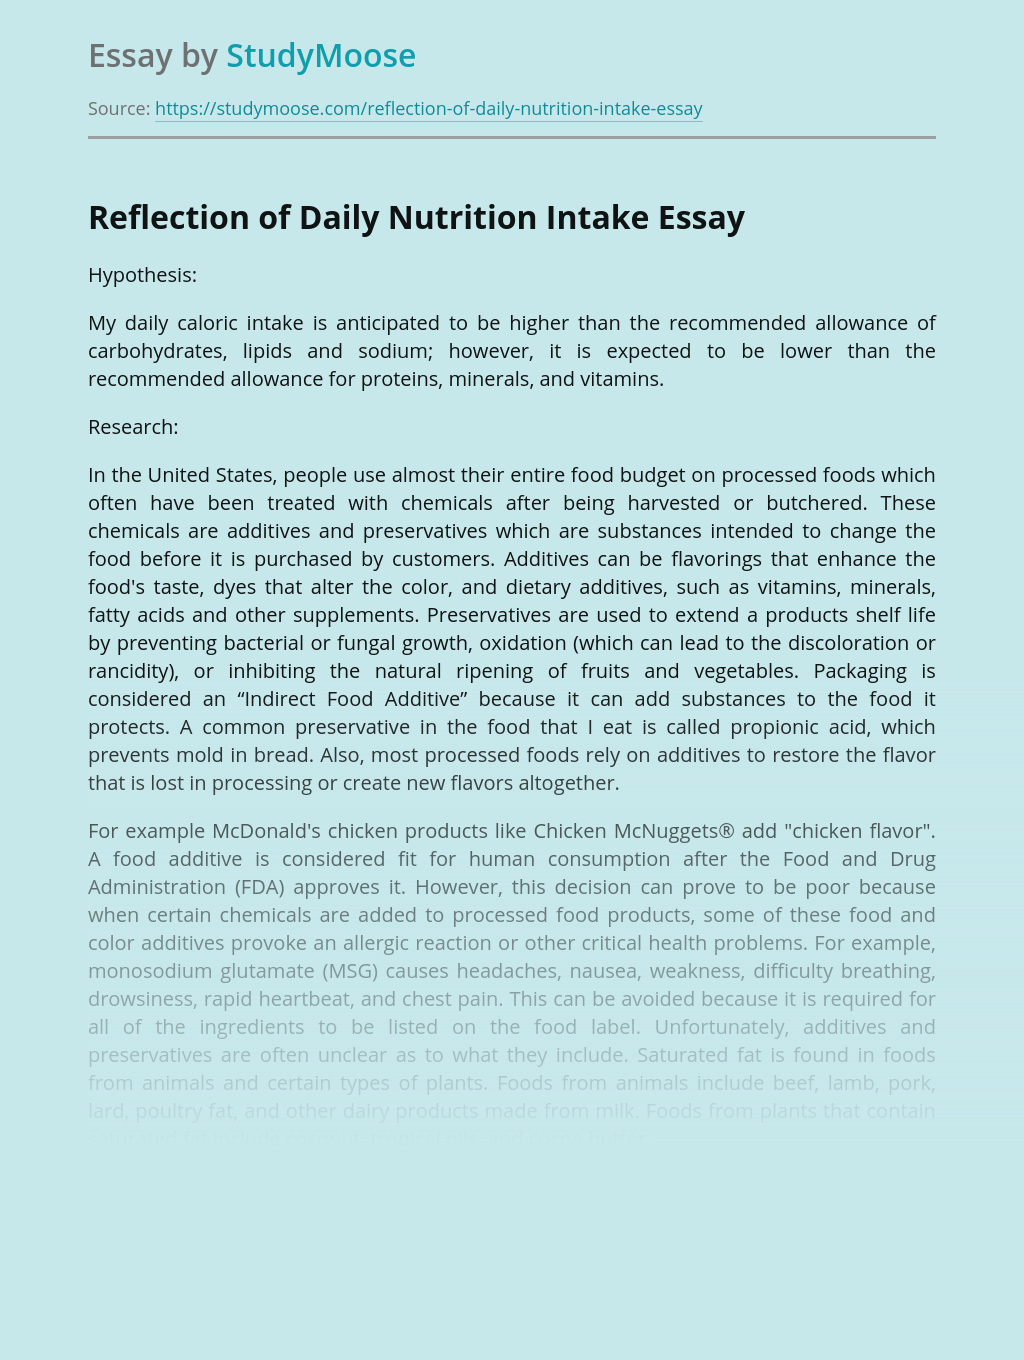 Reflection of Daily Nutrition Intake